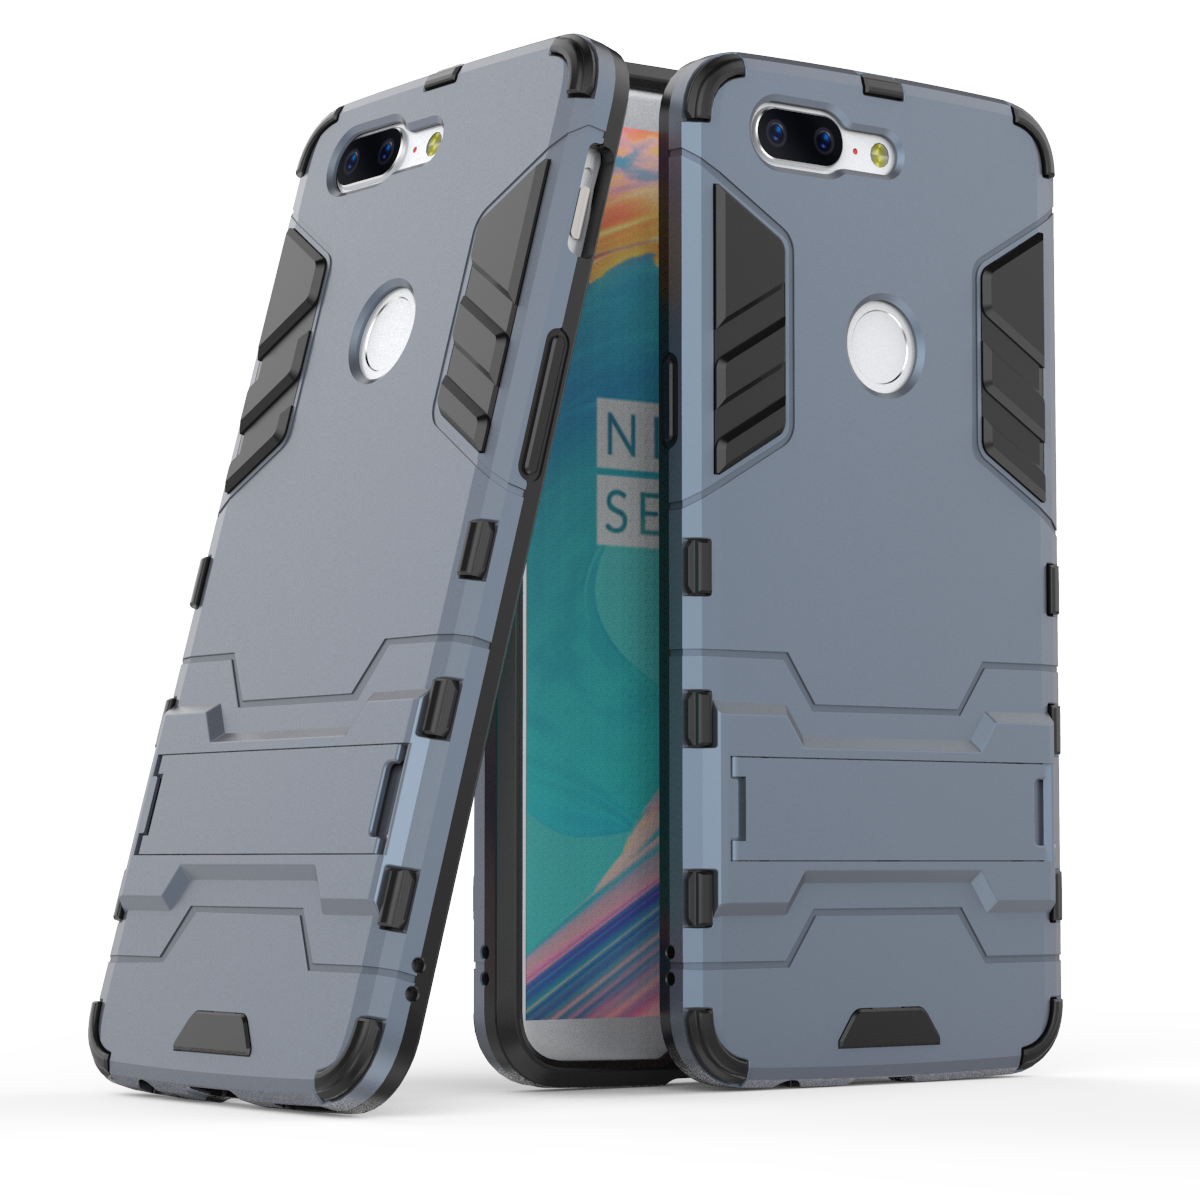 <font><b>3D</b></font> Shockproof Armor Cases For <font><b>Oneplus</b></font> 3 3T 5 5T <font><b>6</b></font> 6T 7 7Pro 1+3 1+3T 1+5 1+5T 1+<font><b>6</b></font> 1+6T 1+7 1+7T TPU Hard Phone Cover Stand Shell image